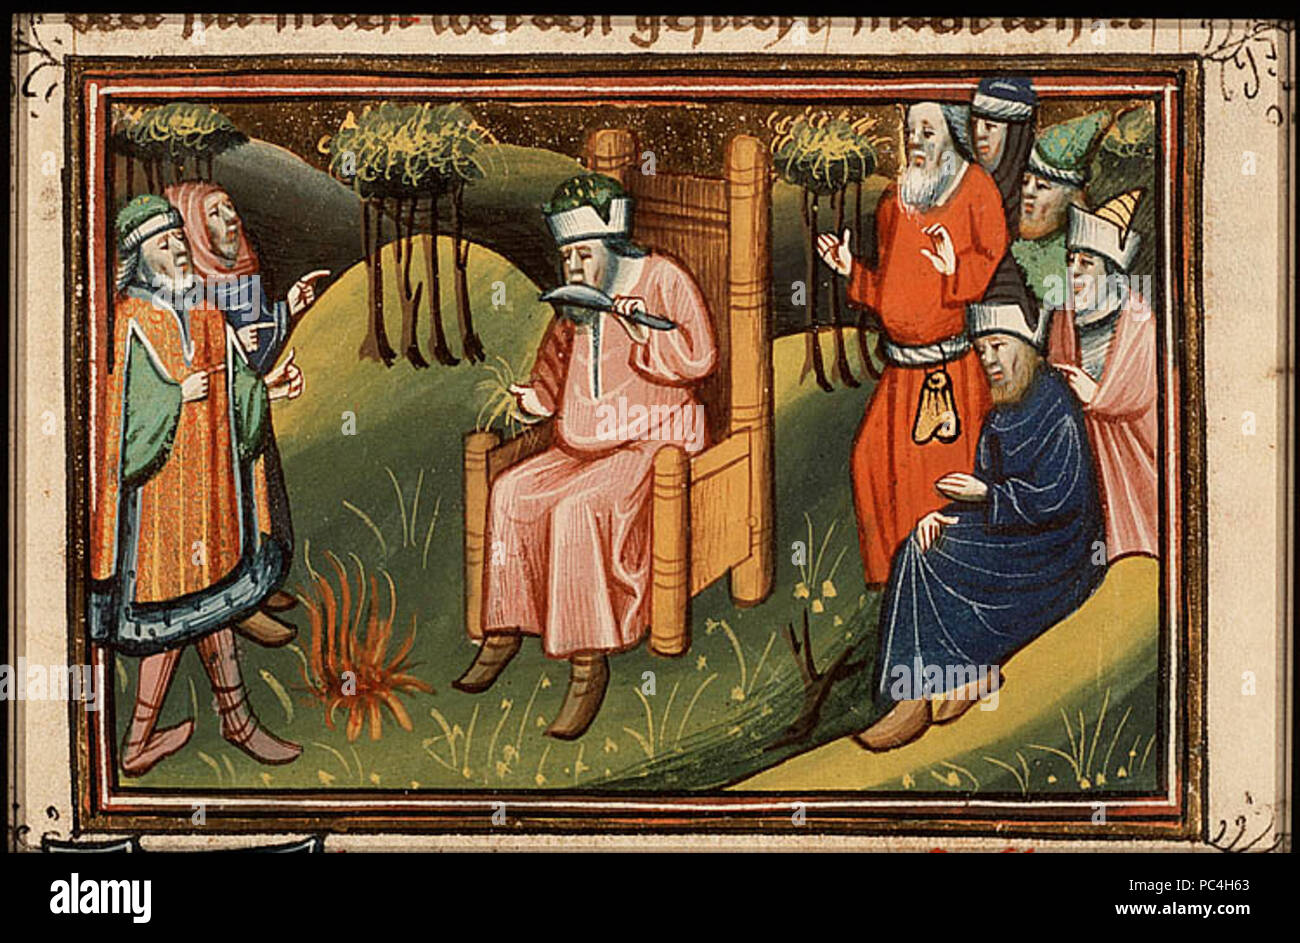 602 The-prophet-ezekiel-cuts-off-his-hair-and-beard-and-burns-it - Stock Image